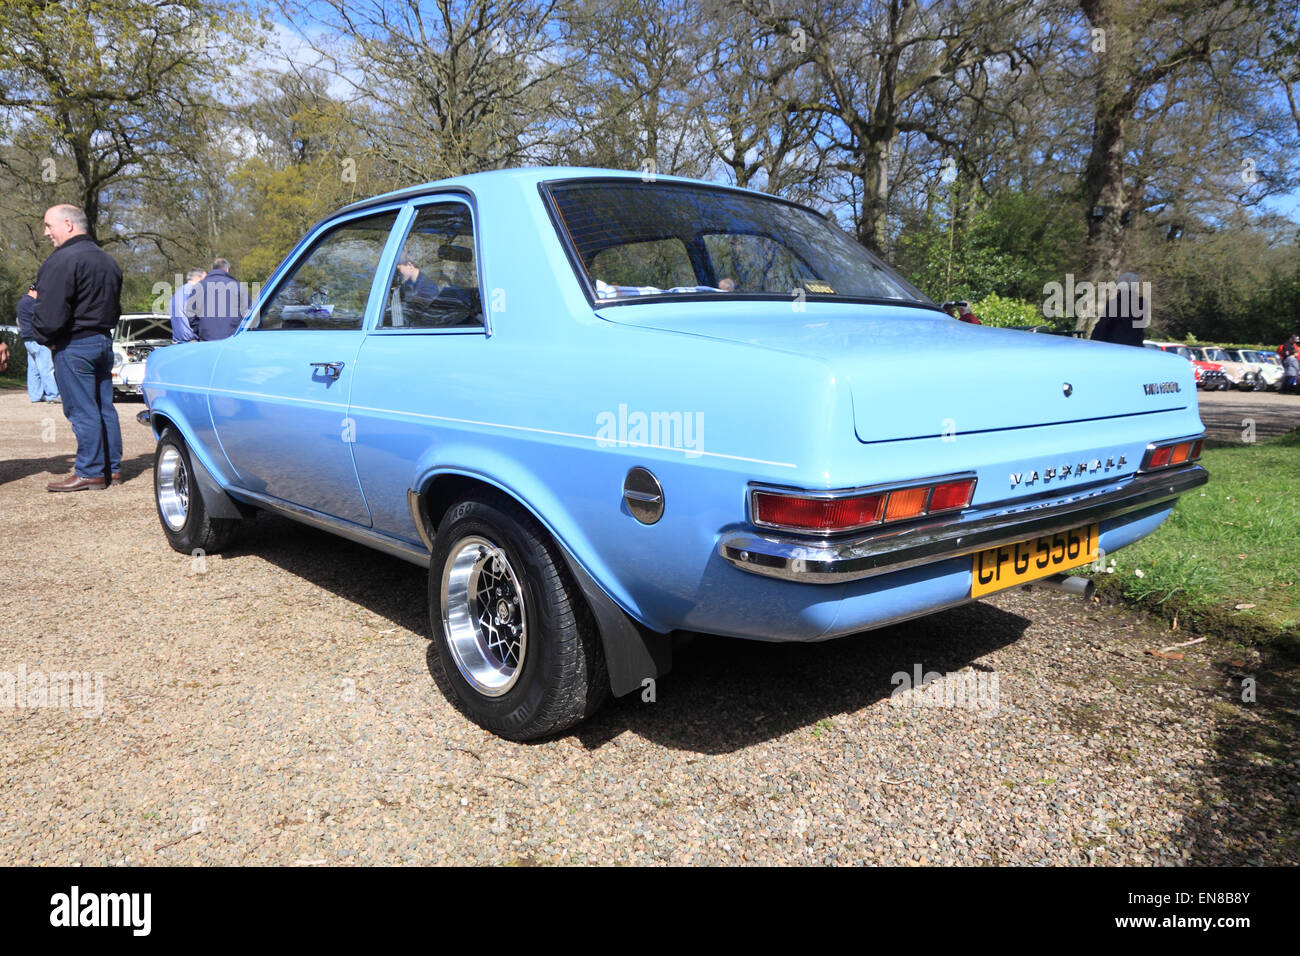 Vauxhall Viva HC at a classic car show, County Armagh, Northern Ireland - Stock Image